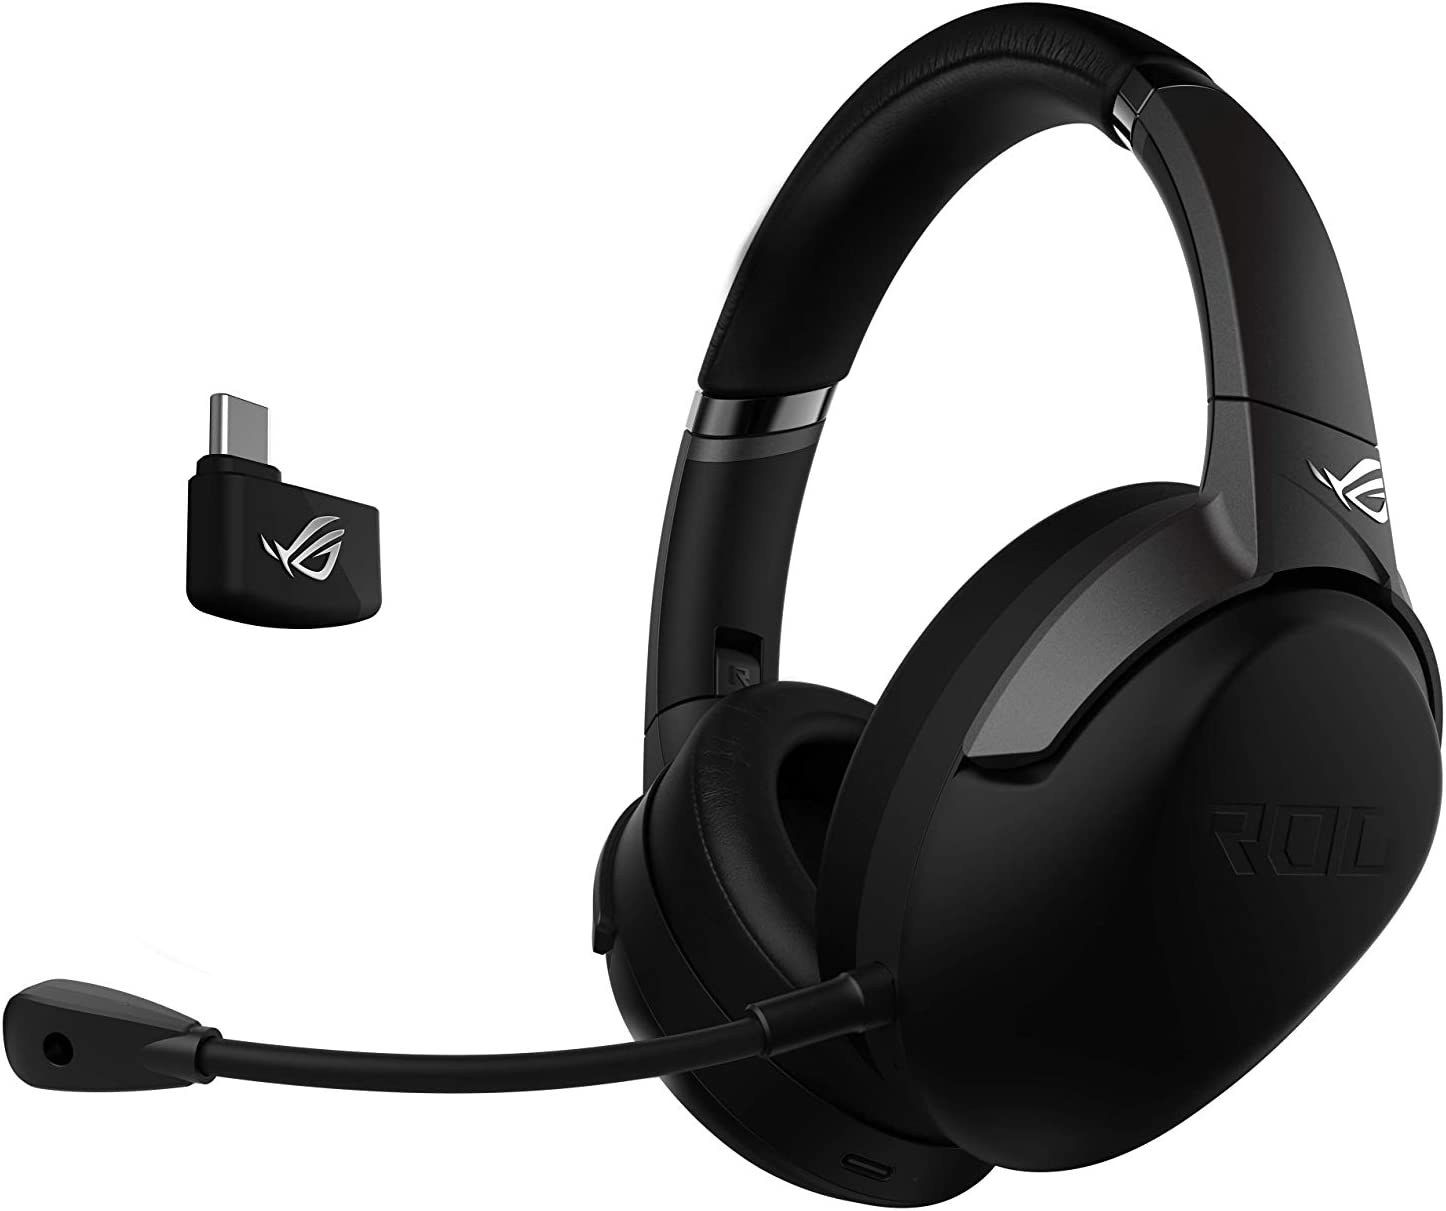 ASUS ROG Strix GO 2.4 - Auriculares de Gaming inalámbricos (2.4 GHz USB-C, micrófono con cancelación de Ruido por IA, compatibles con PC, Mac, Nintendo Switch, Dispositivos Inteligentes y PS4) Negro